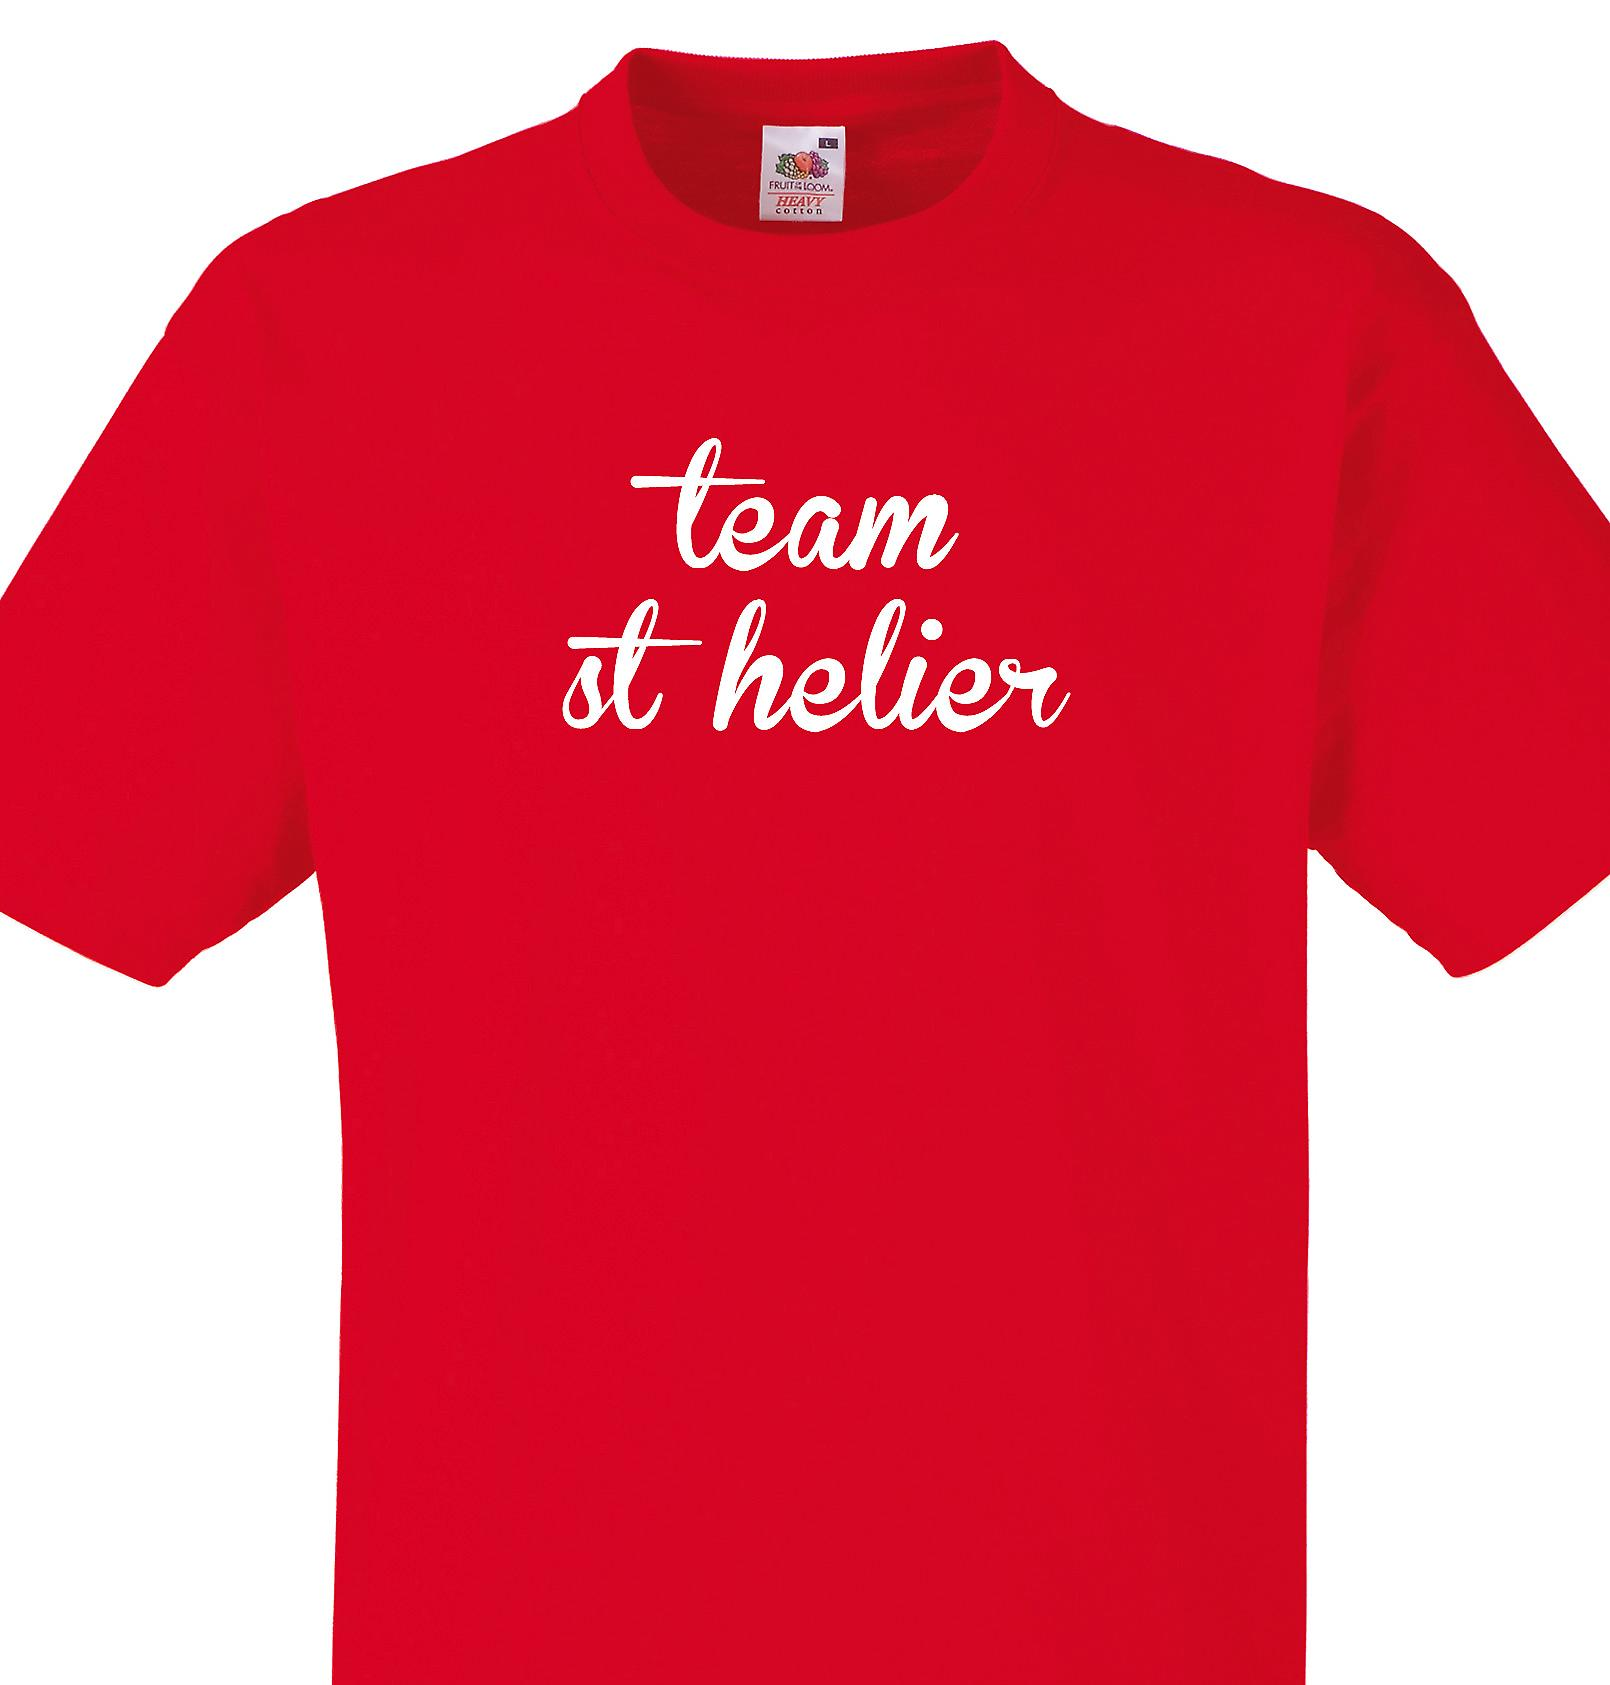 Team St helier Red T shirt